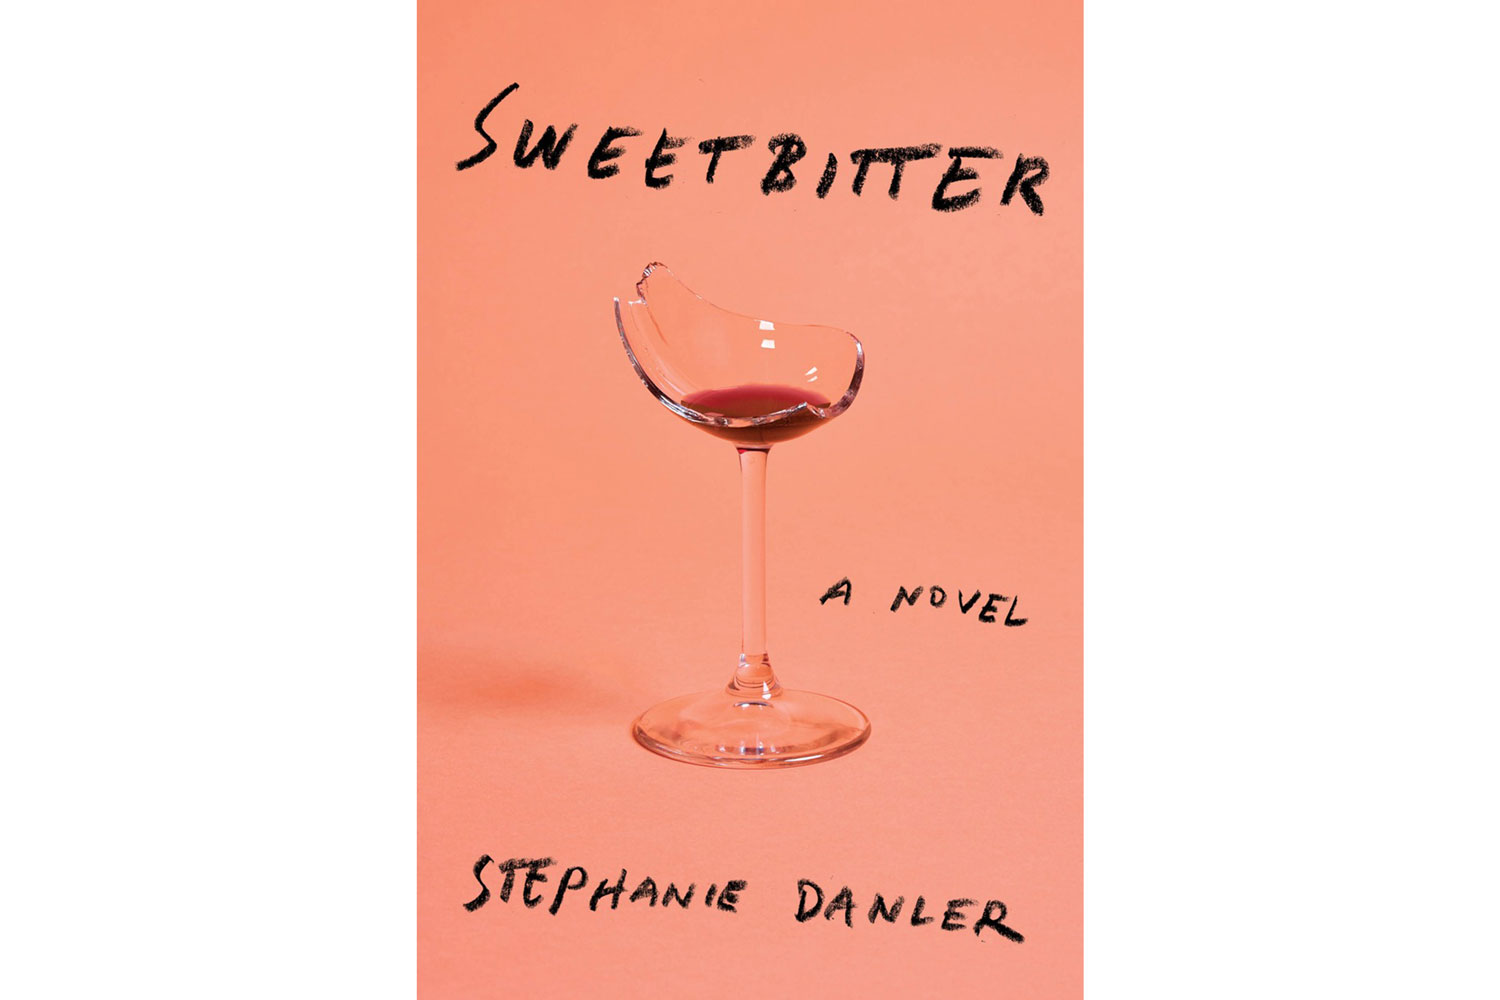 Sweetbitter, by Stephanie Danler